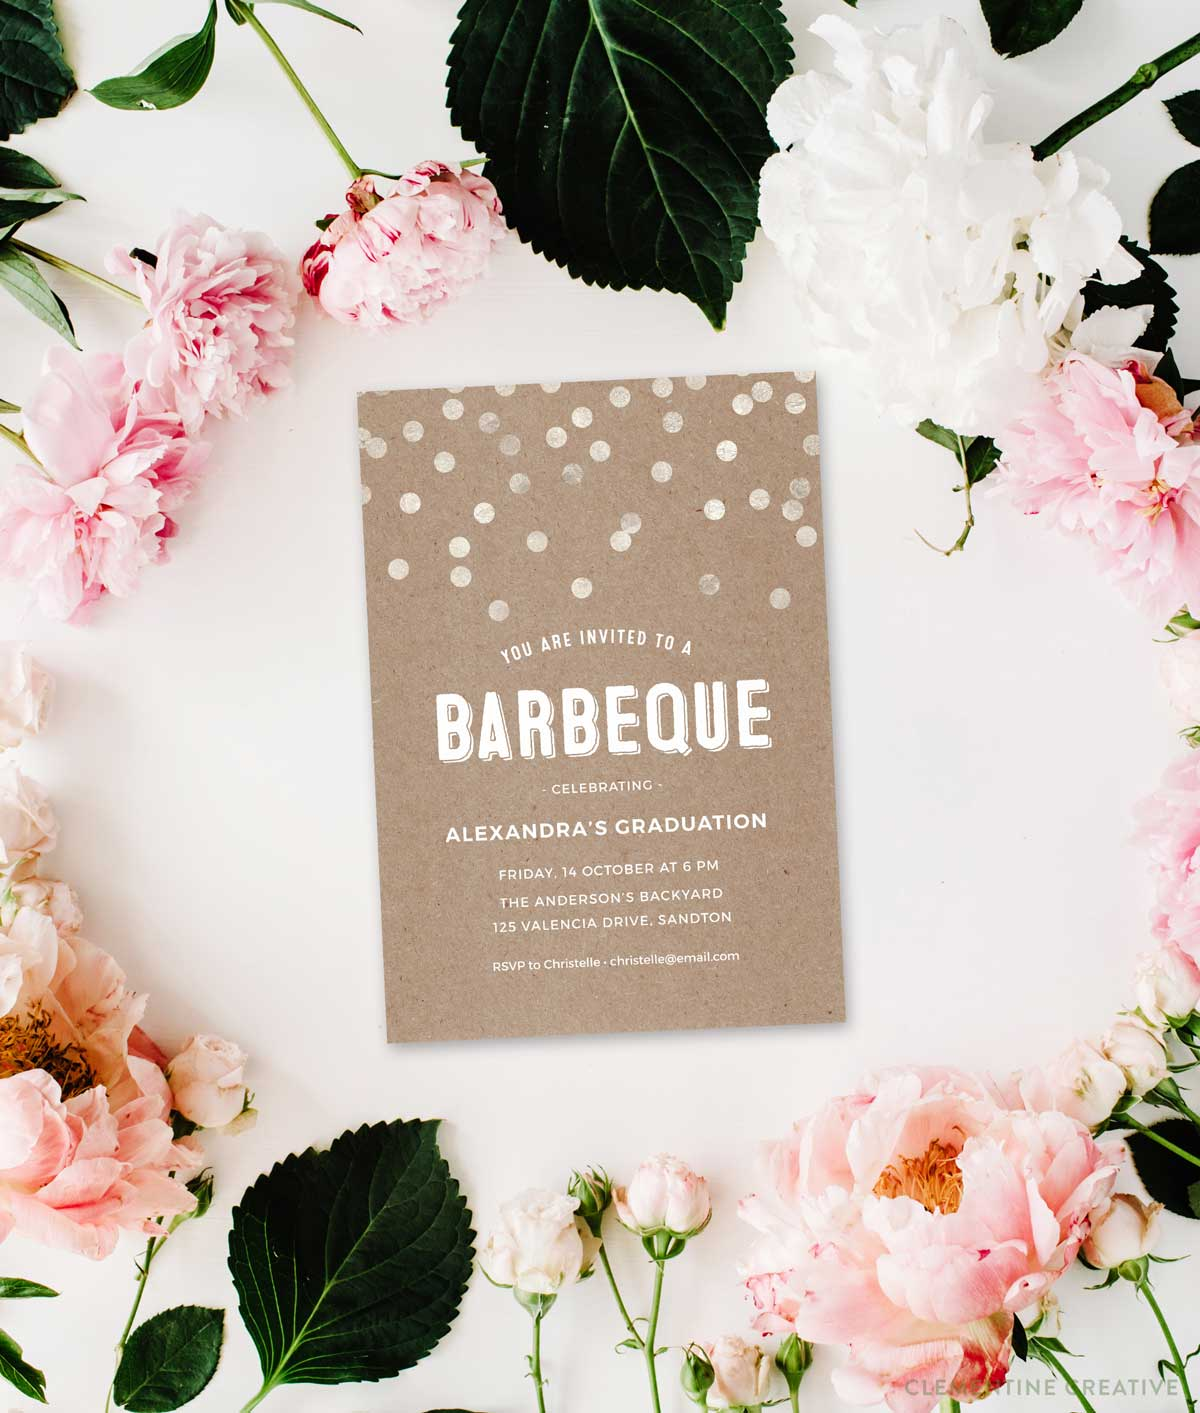 photo about Free Printable Bbq Invitations identify Toss a Classy Barbeque Social gathering With This Beautiful Invitation